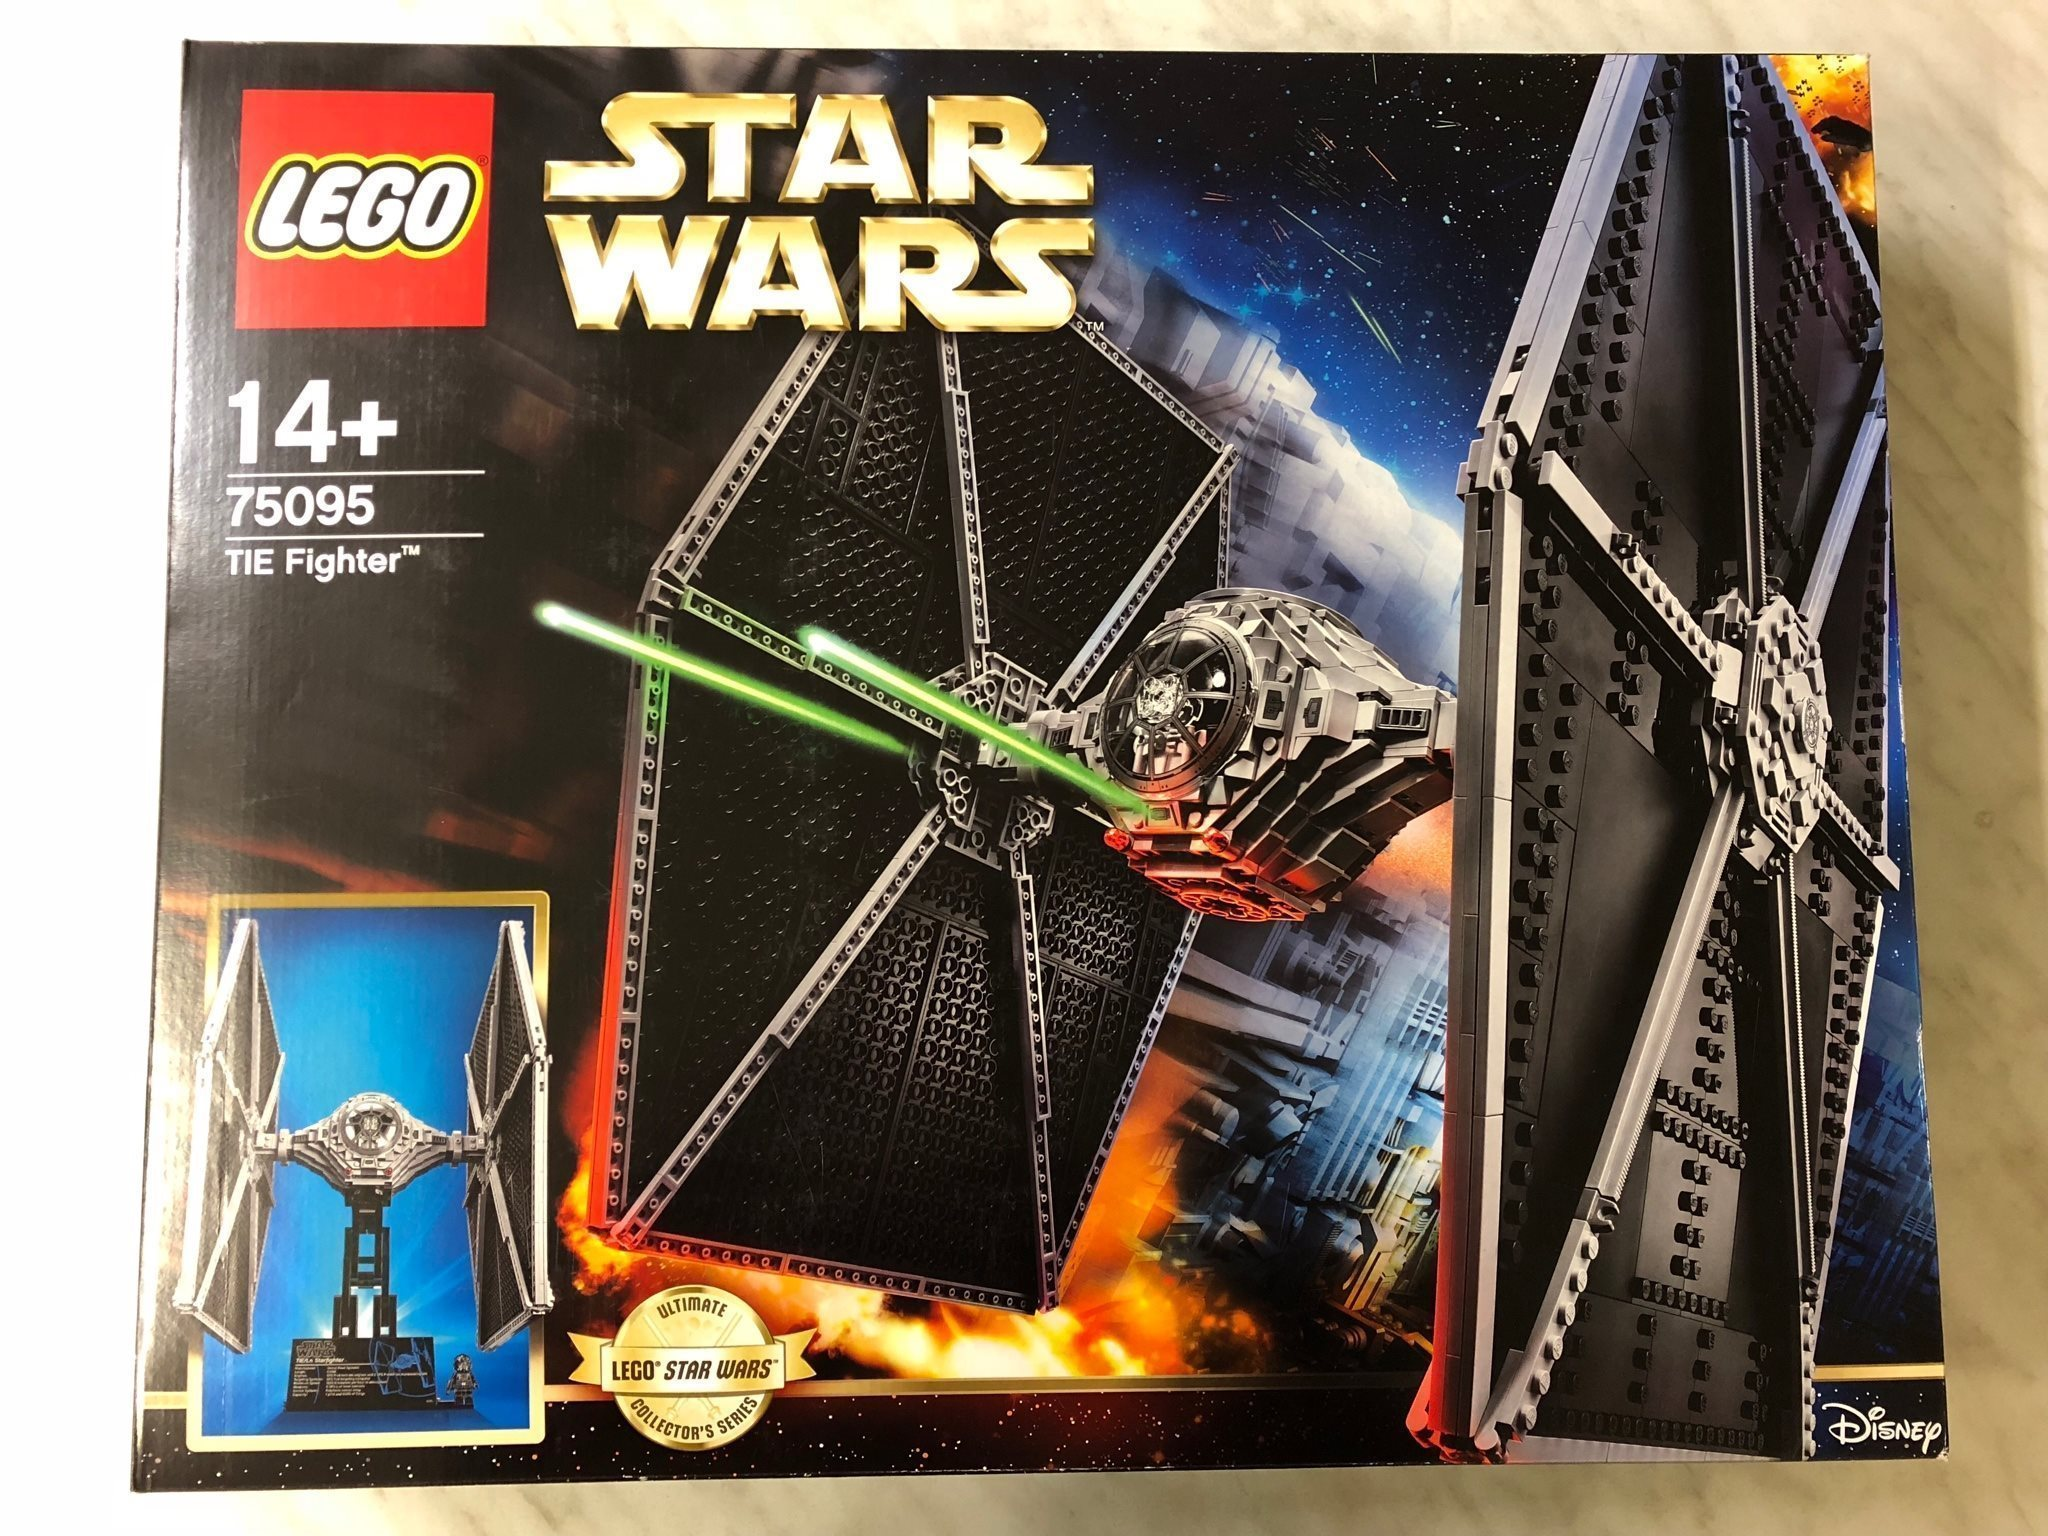 LEGO Star Wars 75095 Tie Fighter UCS - Ny